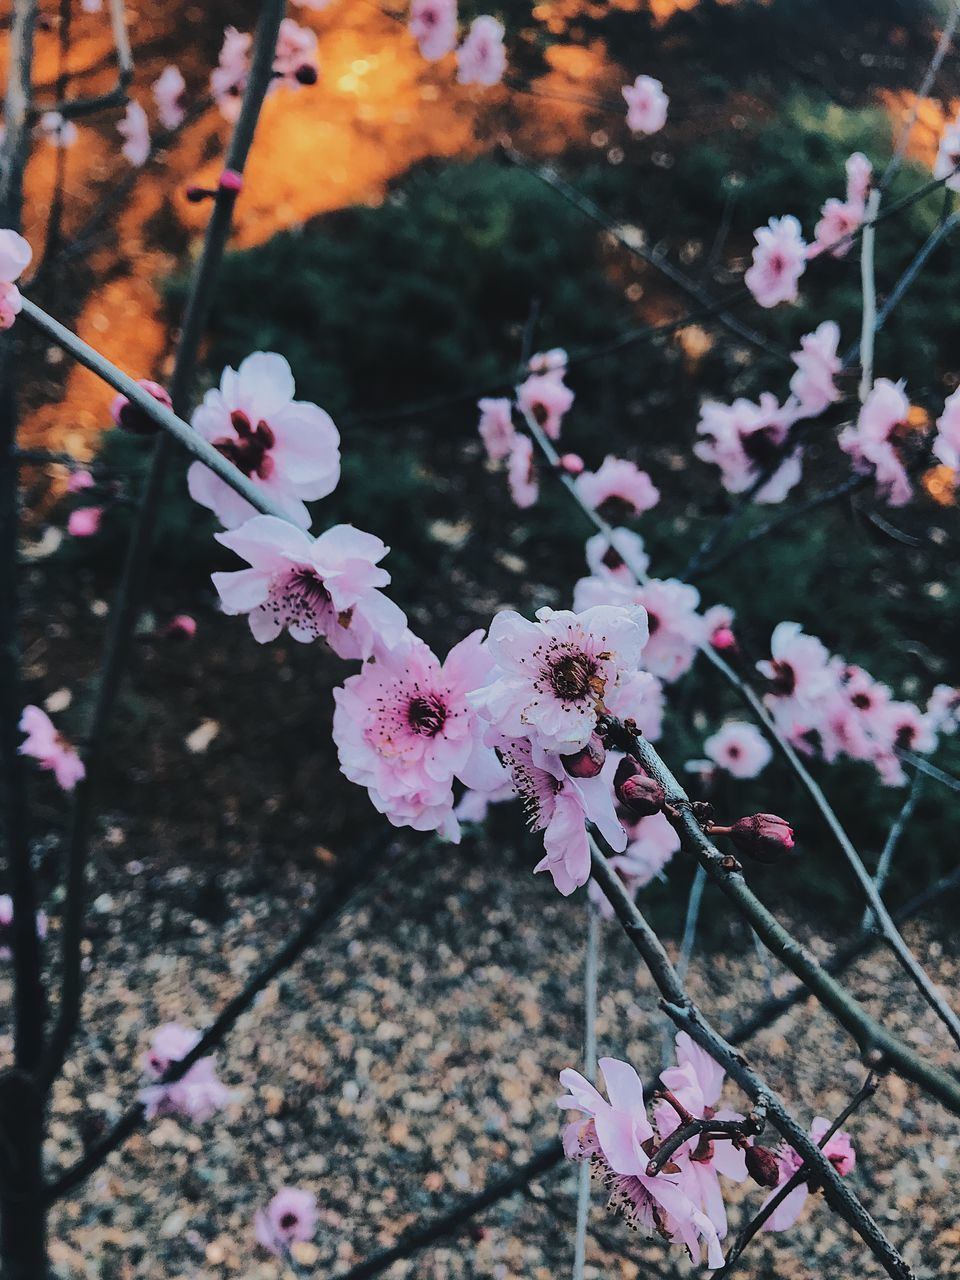 flowering plant, flower, fragility, plant, beauty in nature, freshness, vulnerability, growth, pink color, springtime, close-up, nature, blossom, focus on foreground, petal, twig, day, tree, no people, branch, cherry blossom, flower head, outdoors, cherry tree, pollen, spring